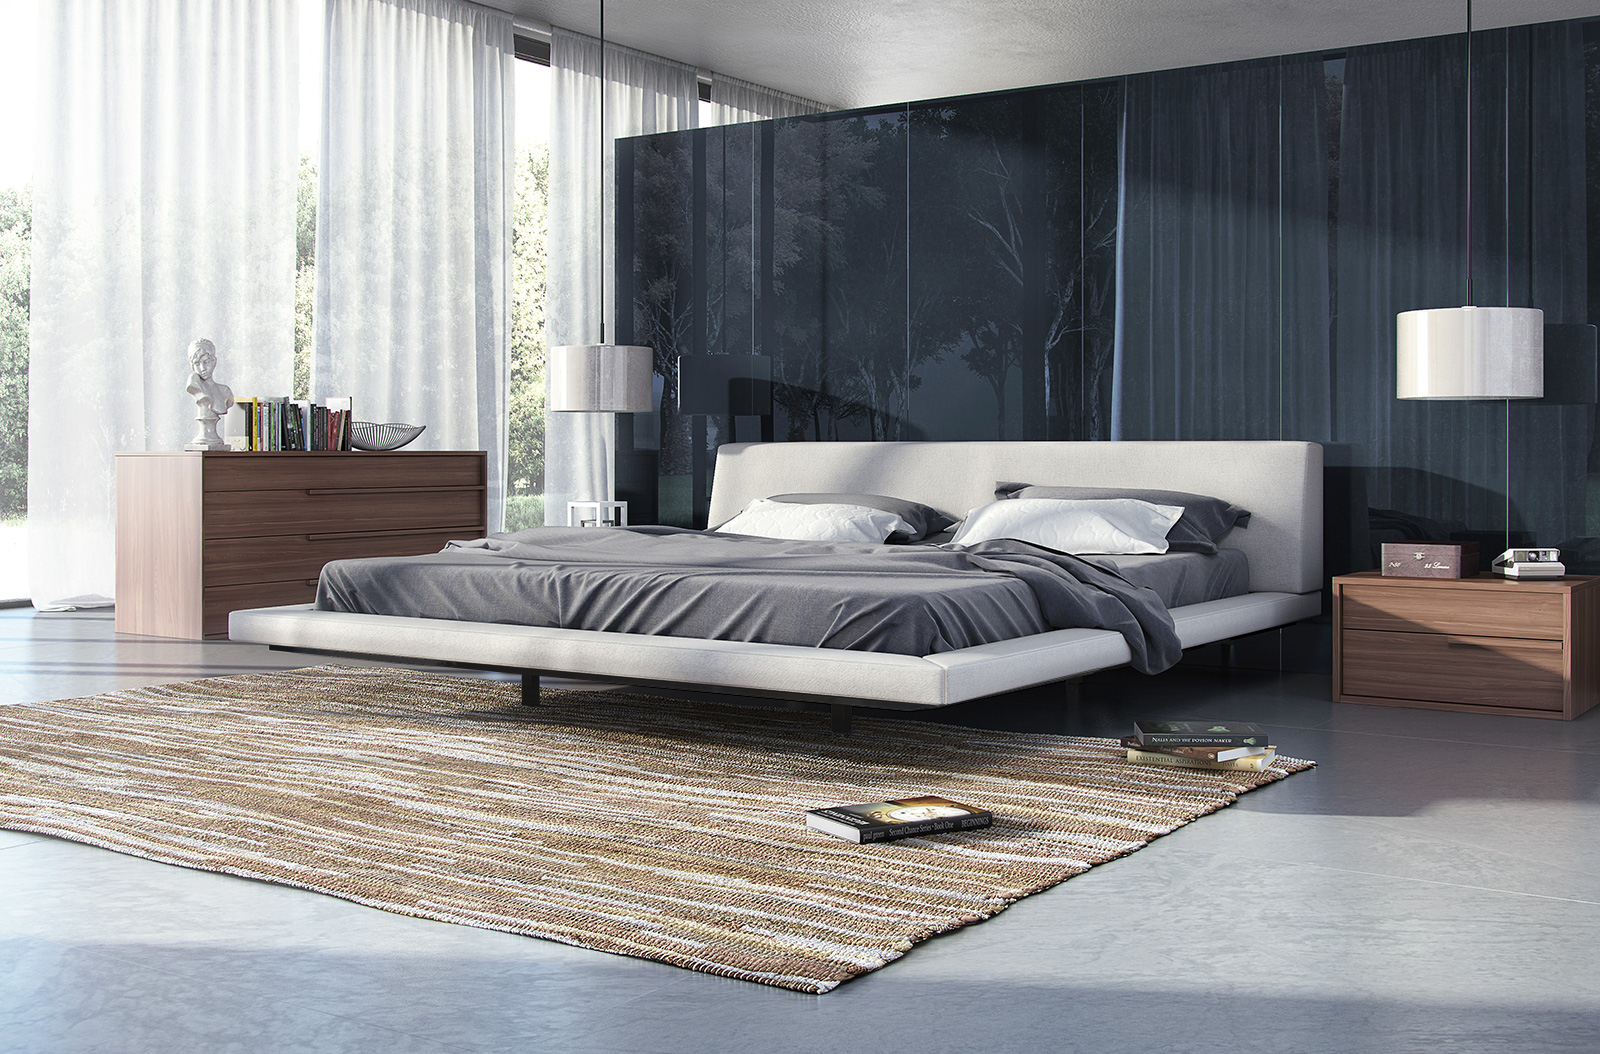 Fashionable Wood High End Platform Bed Fresno California Mljan